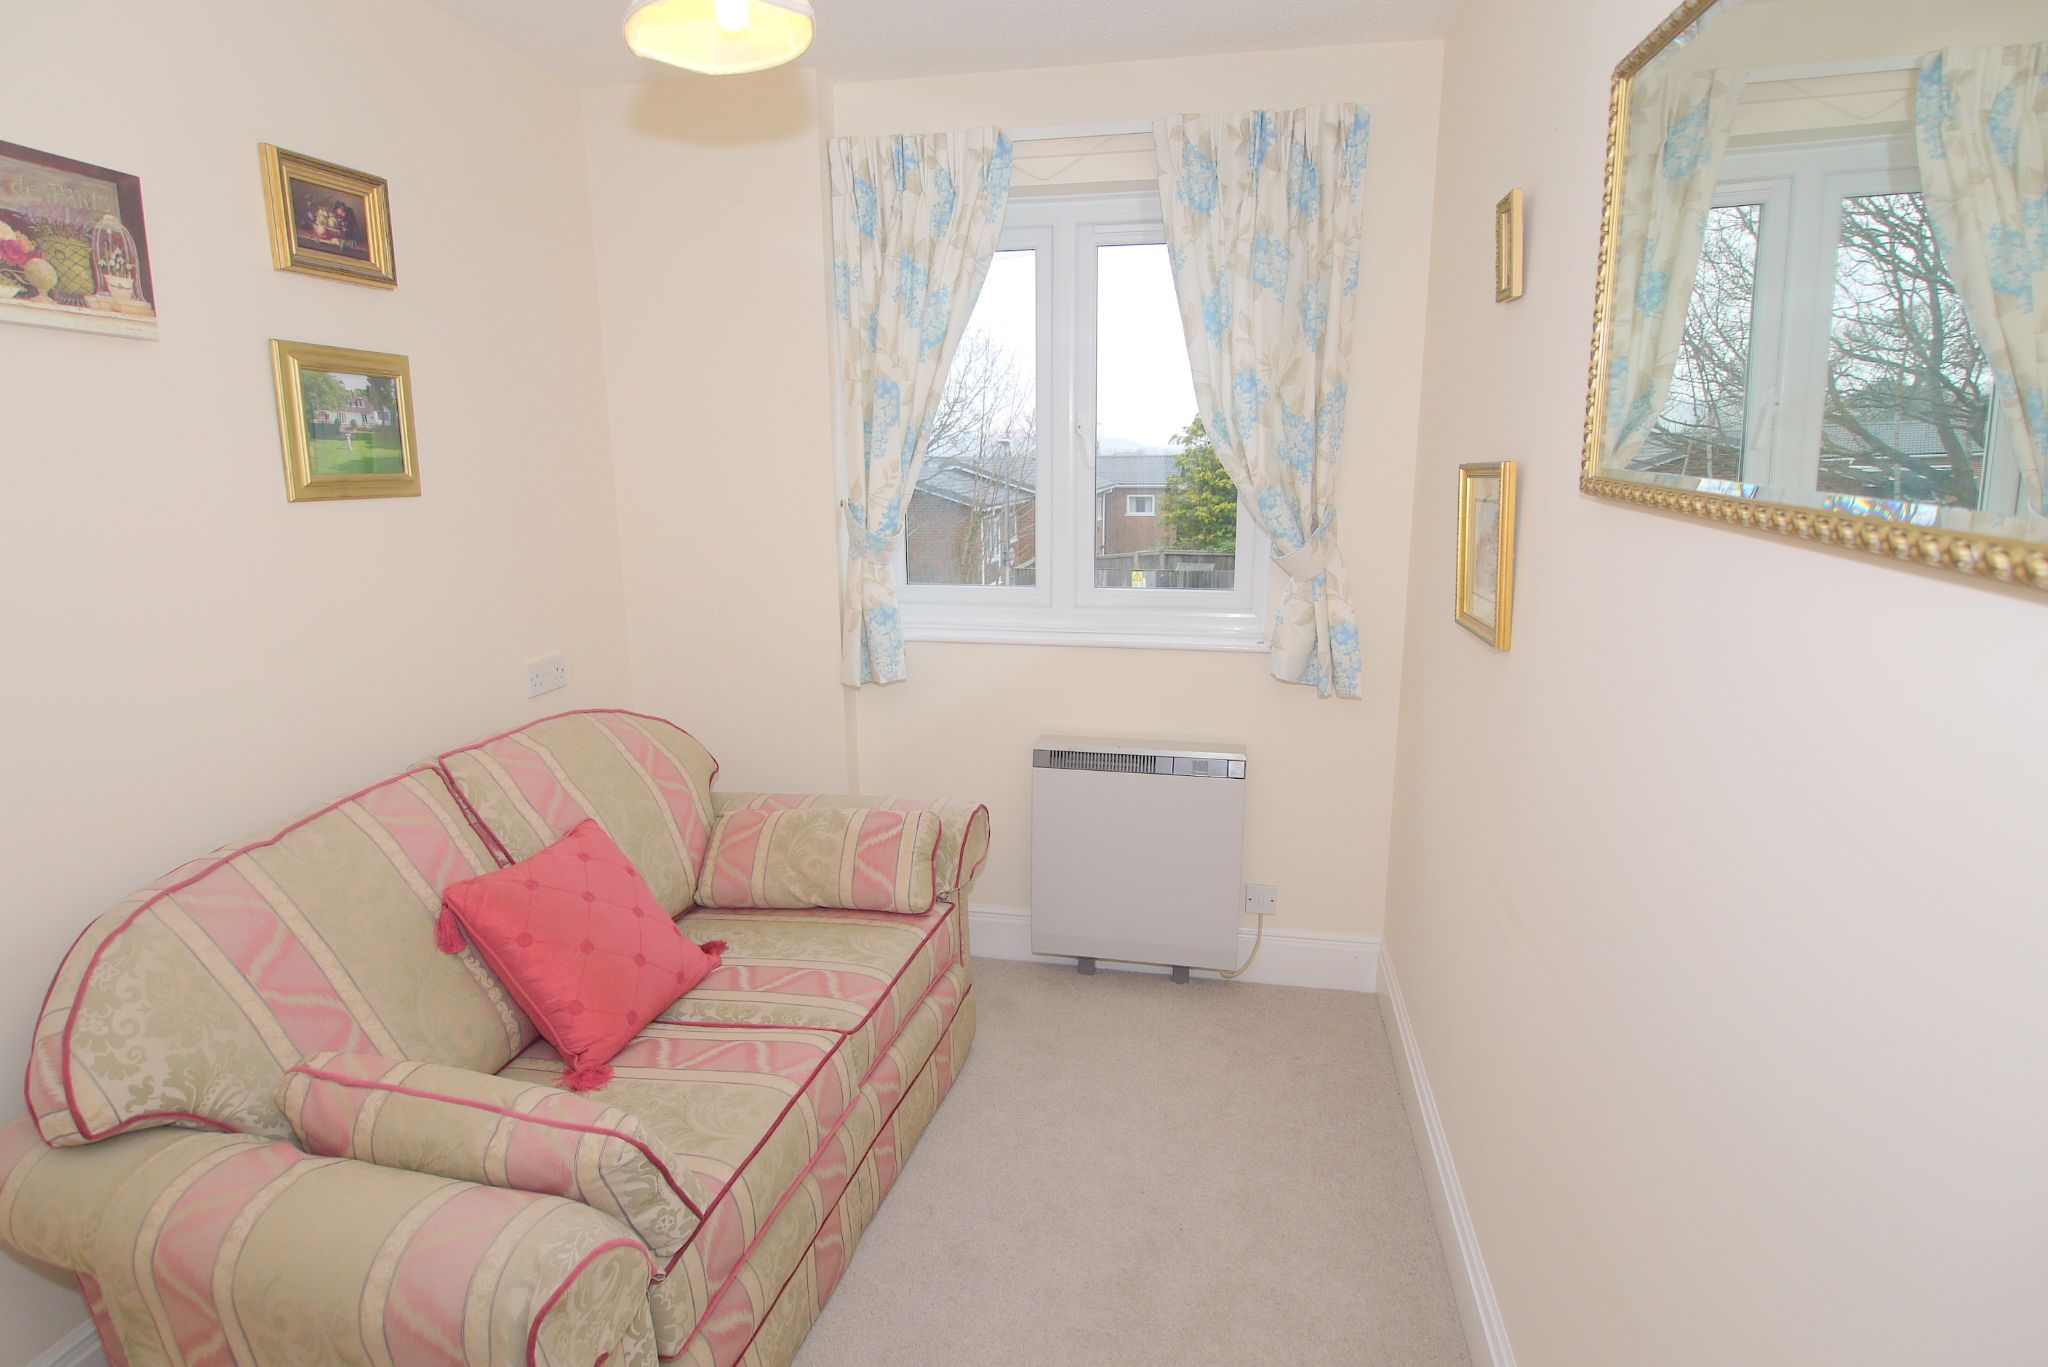 2 bedroom apartment For Sale in Sevenoaks - Photograph 4